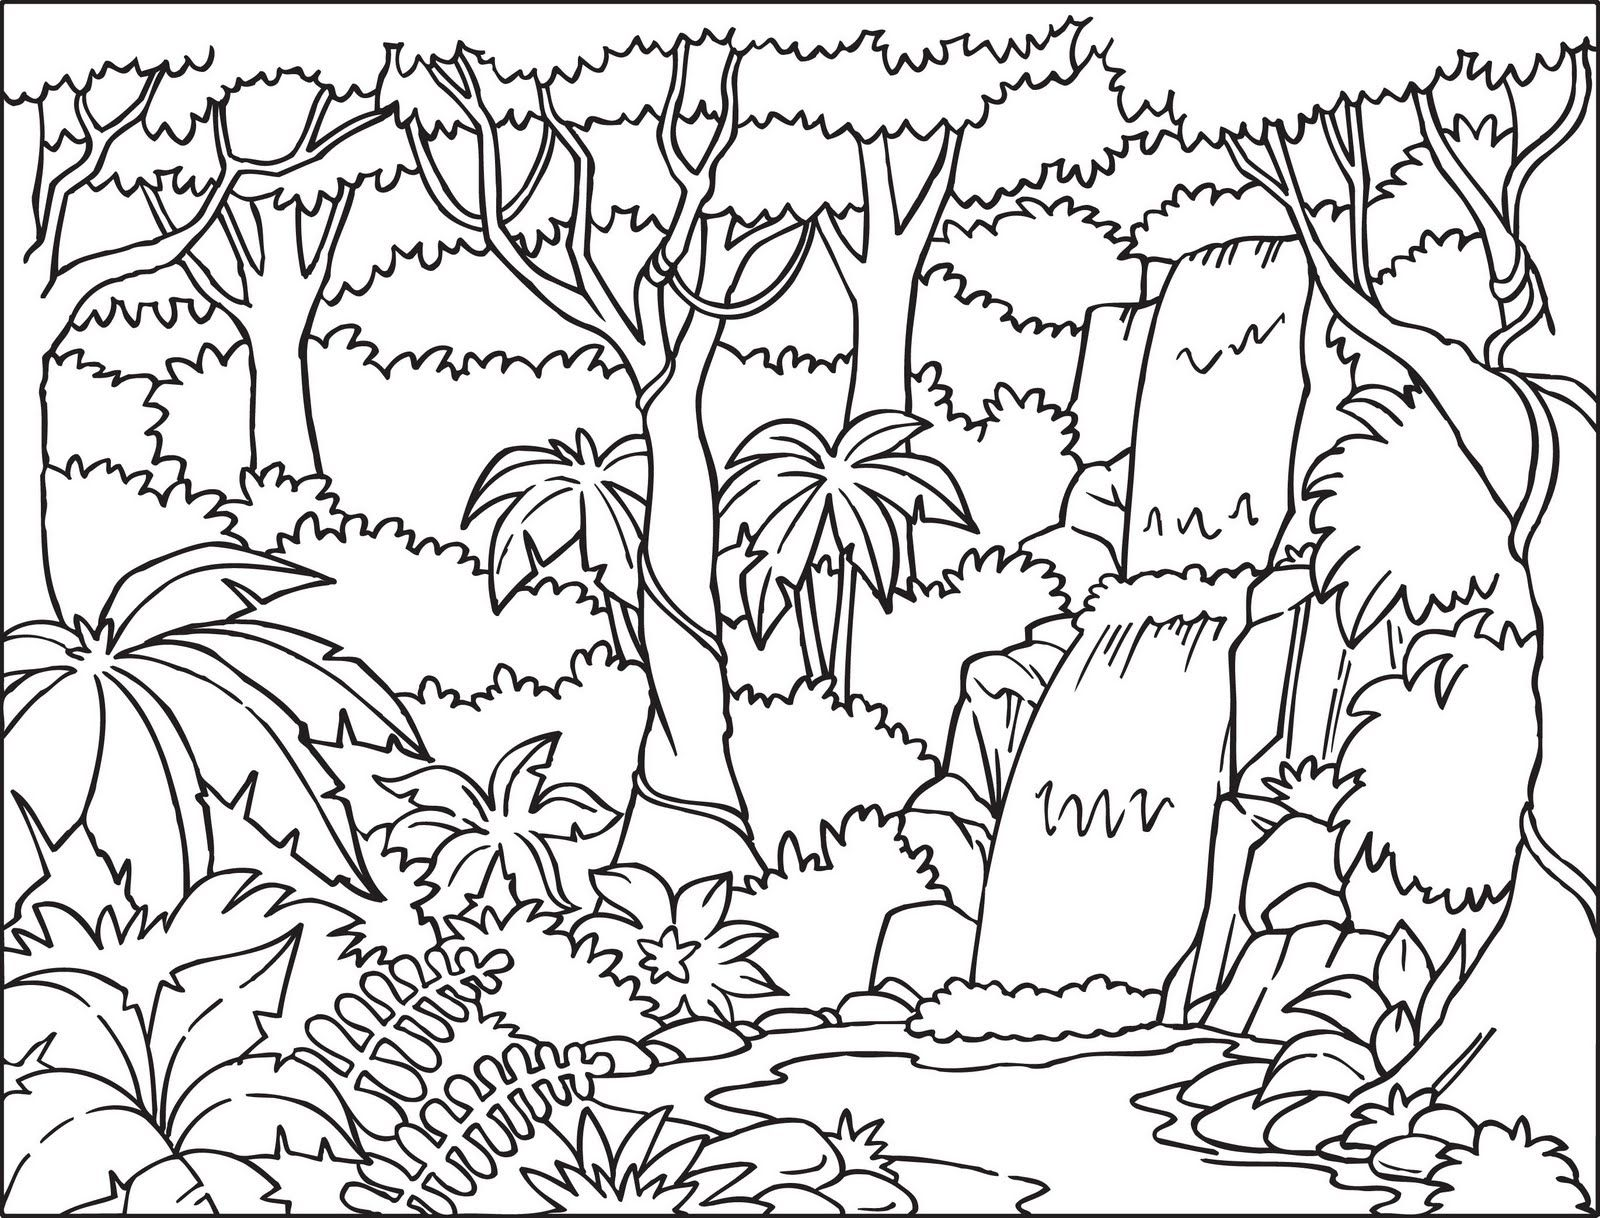 rainforest coloring pages | coloringpages321.com | habitats ... - Rainforest Insects Coloring Pages